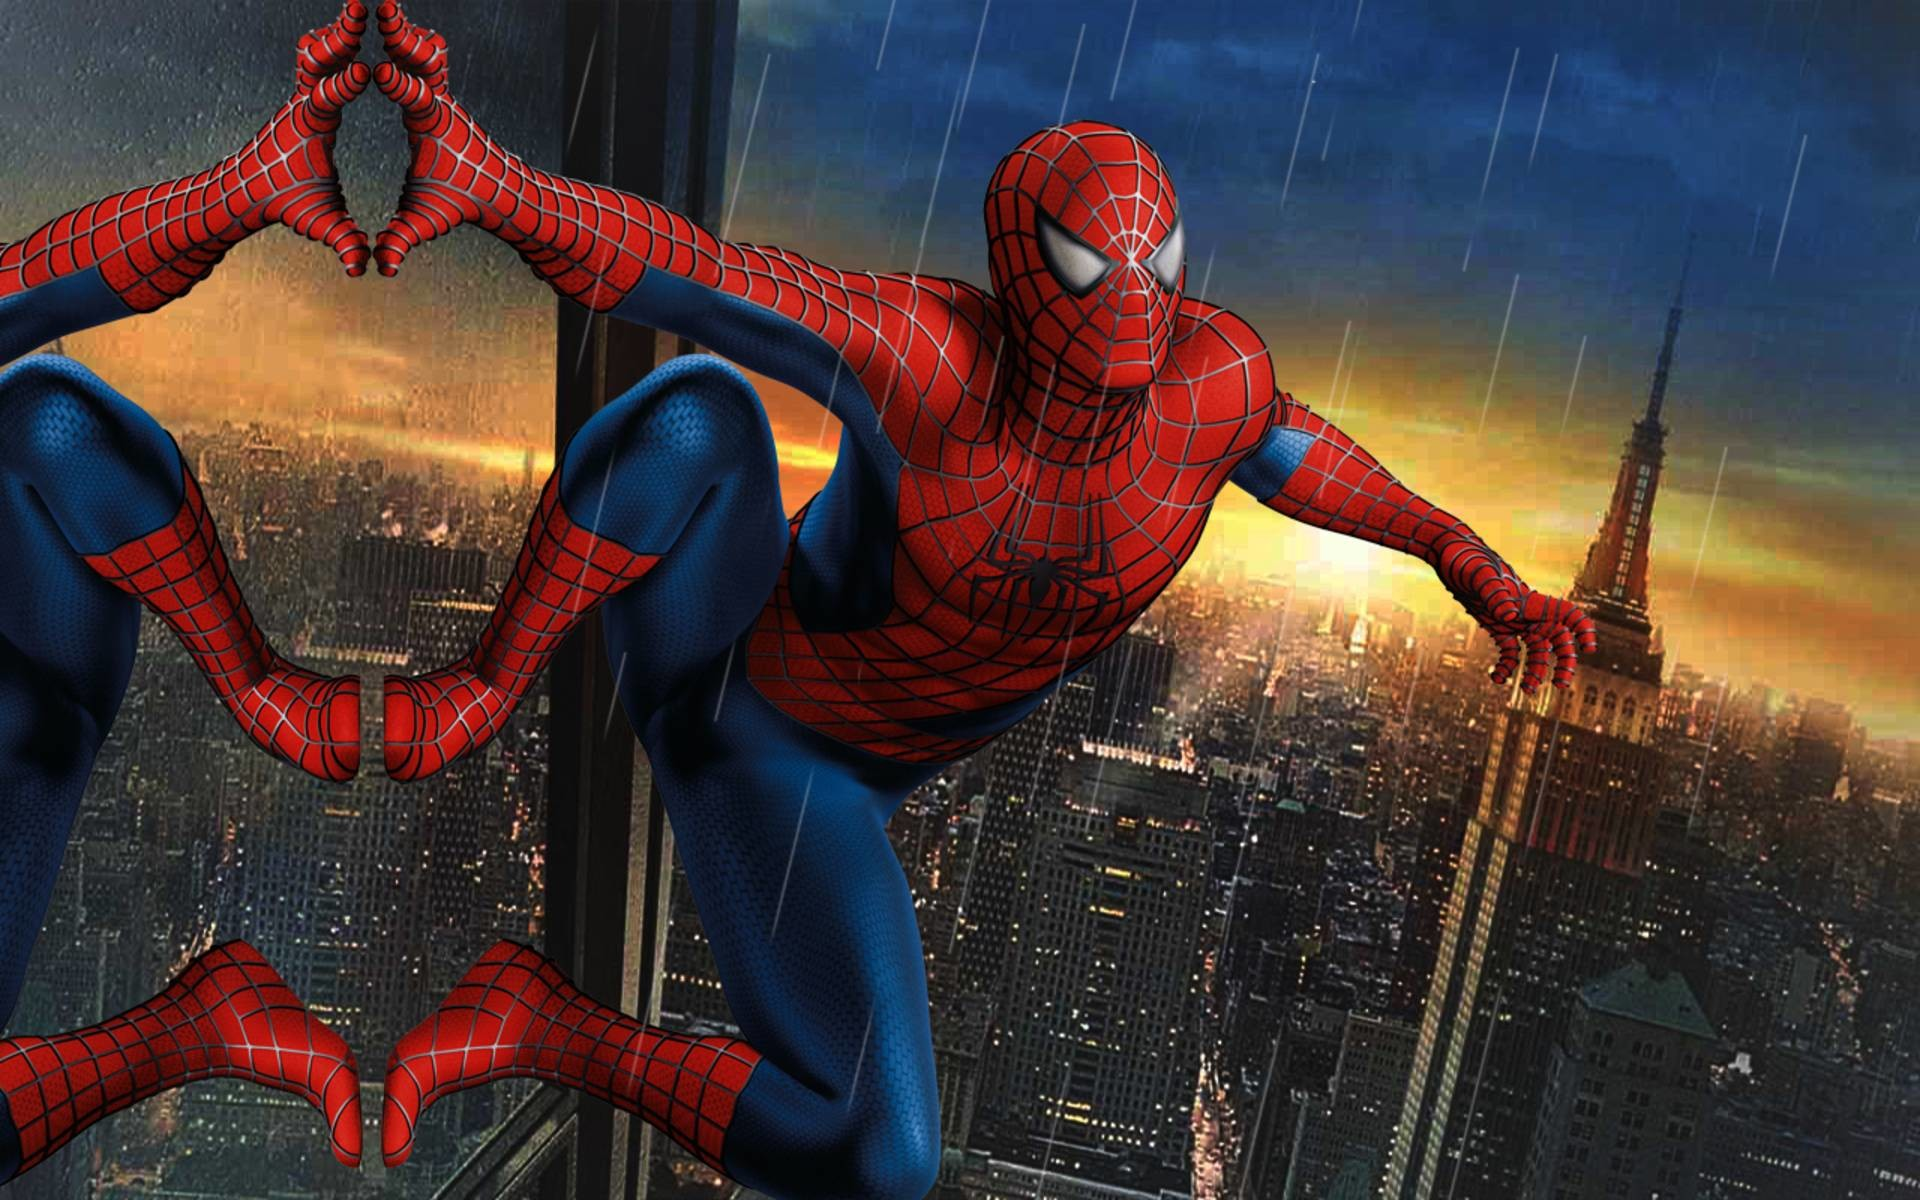 spiderman hd wallpapers ·①